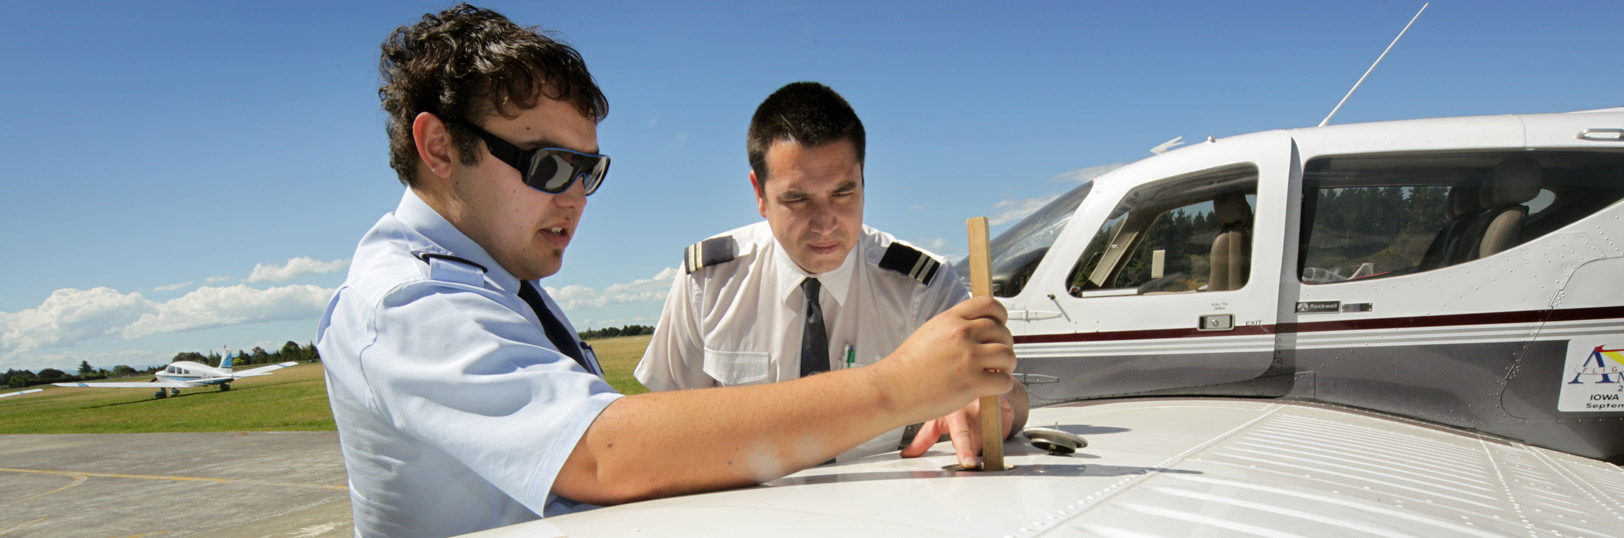 Pilot Training, checking fuel levels